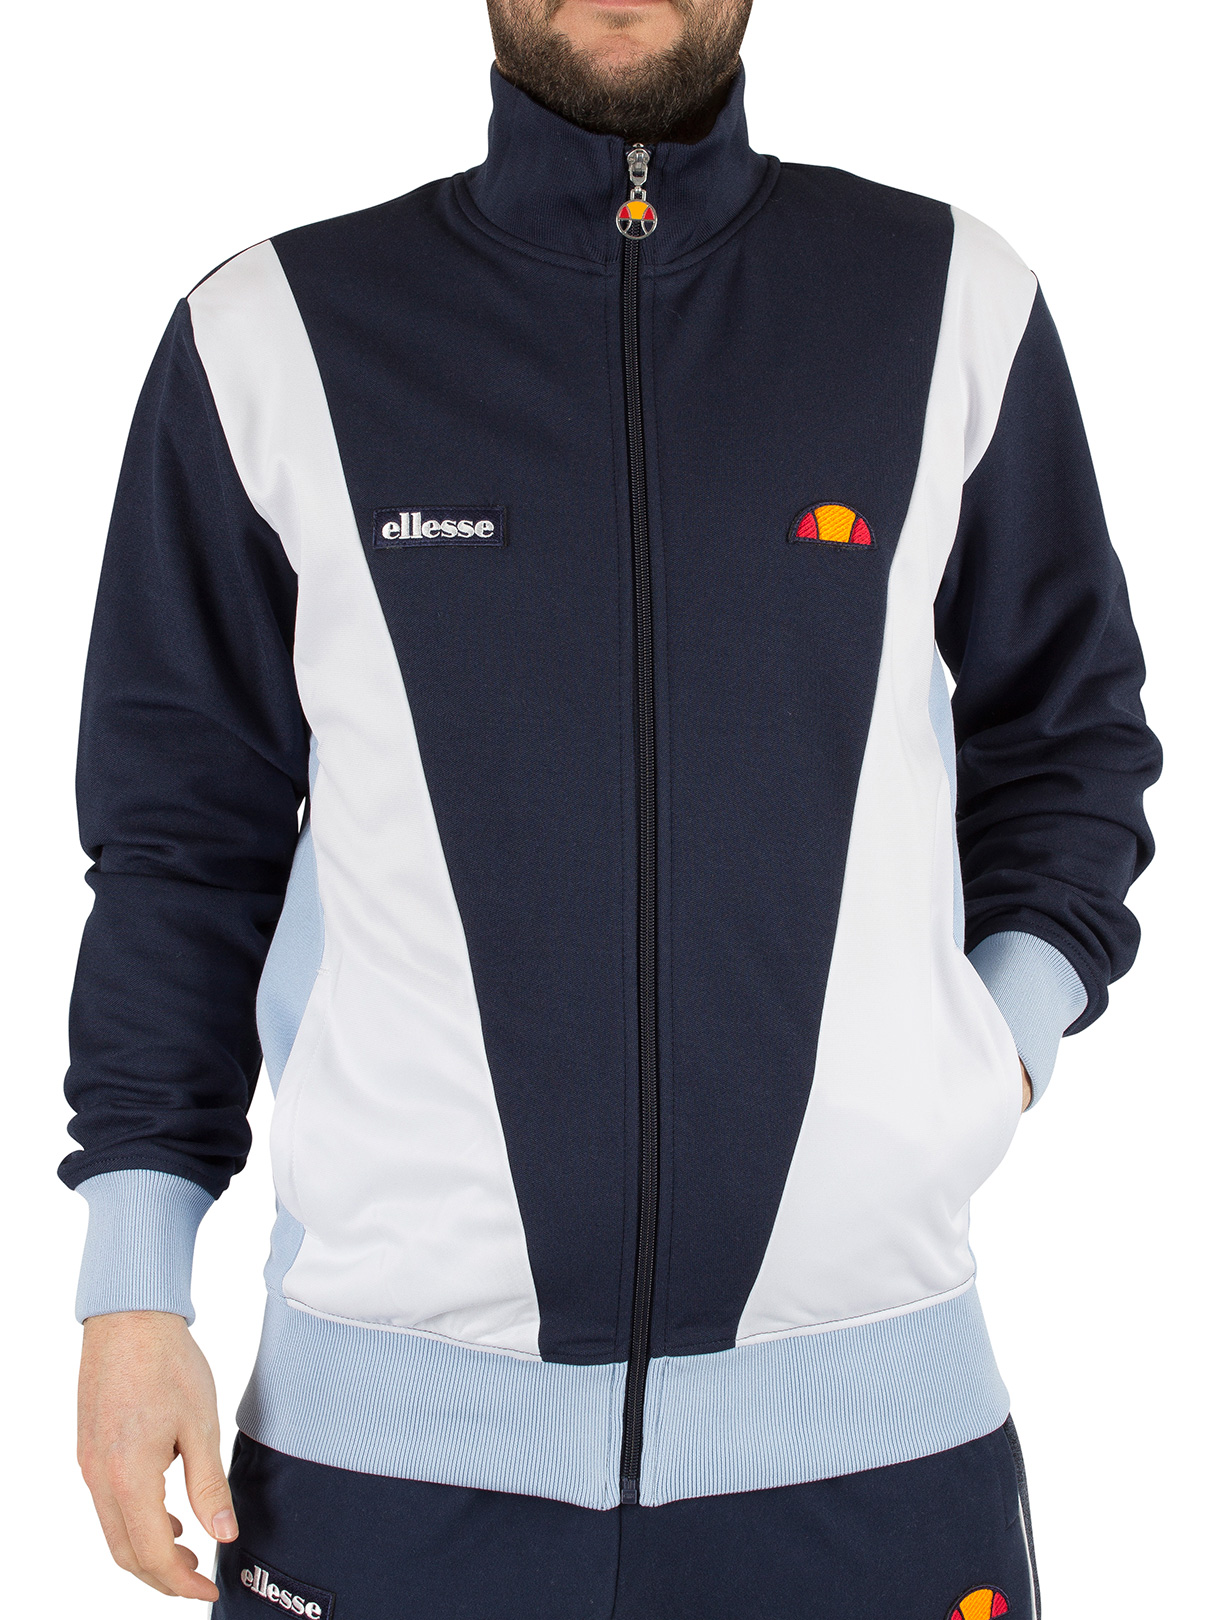 ellesse herren vilas logo tracktop jacke blau ebay. Black Bedroom Furniture Sets. Home Design Ideas